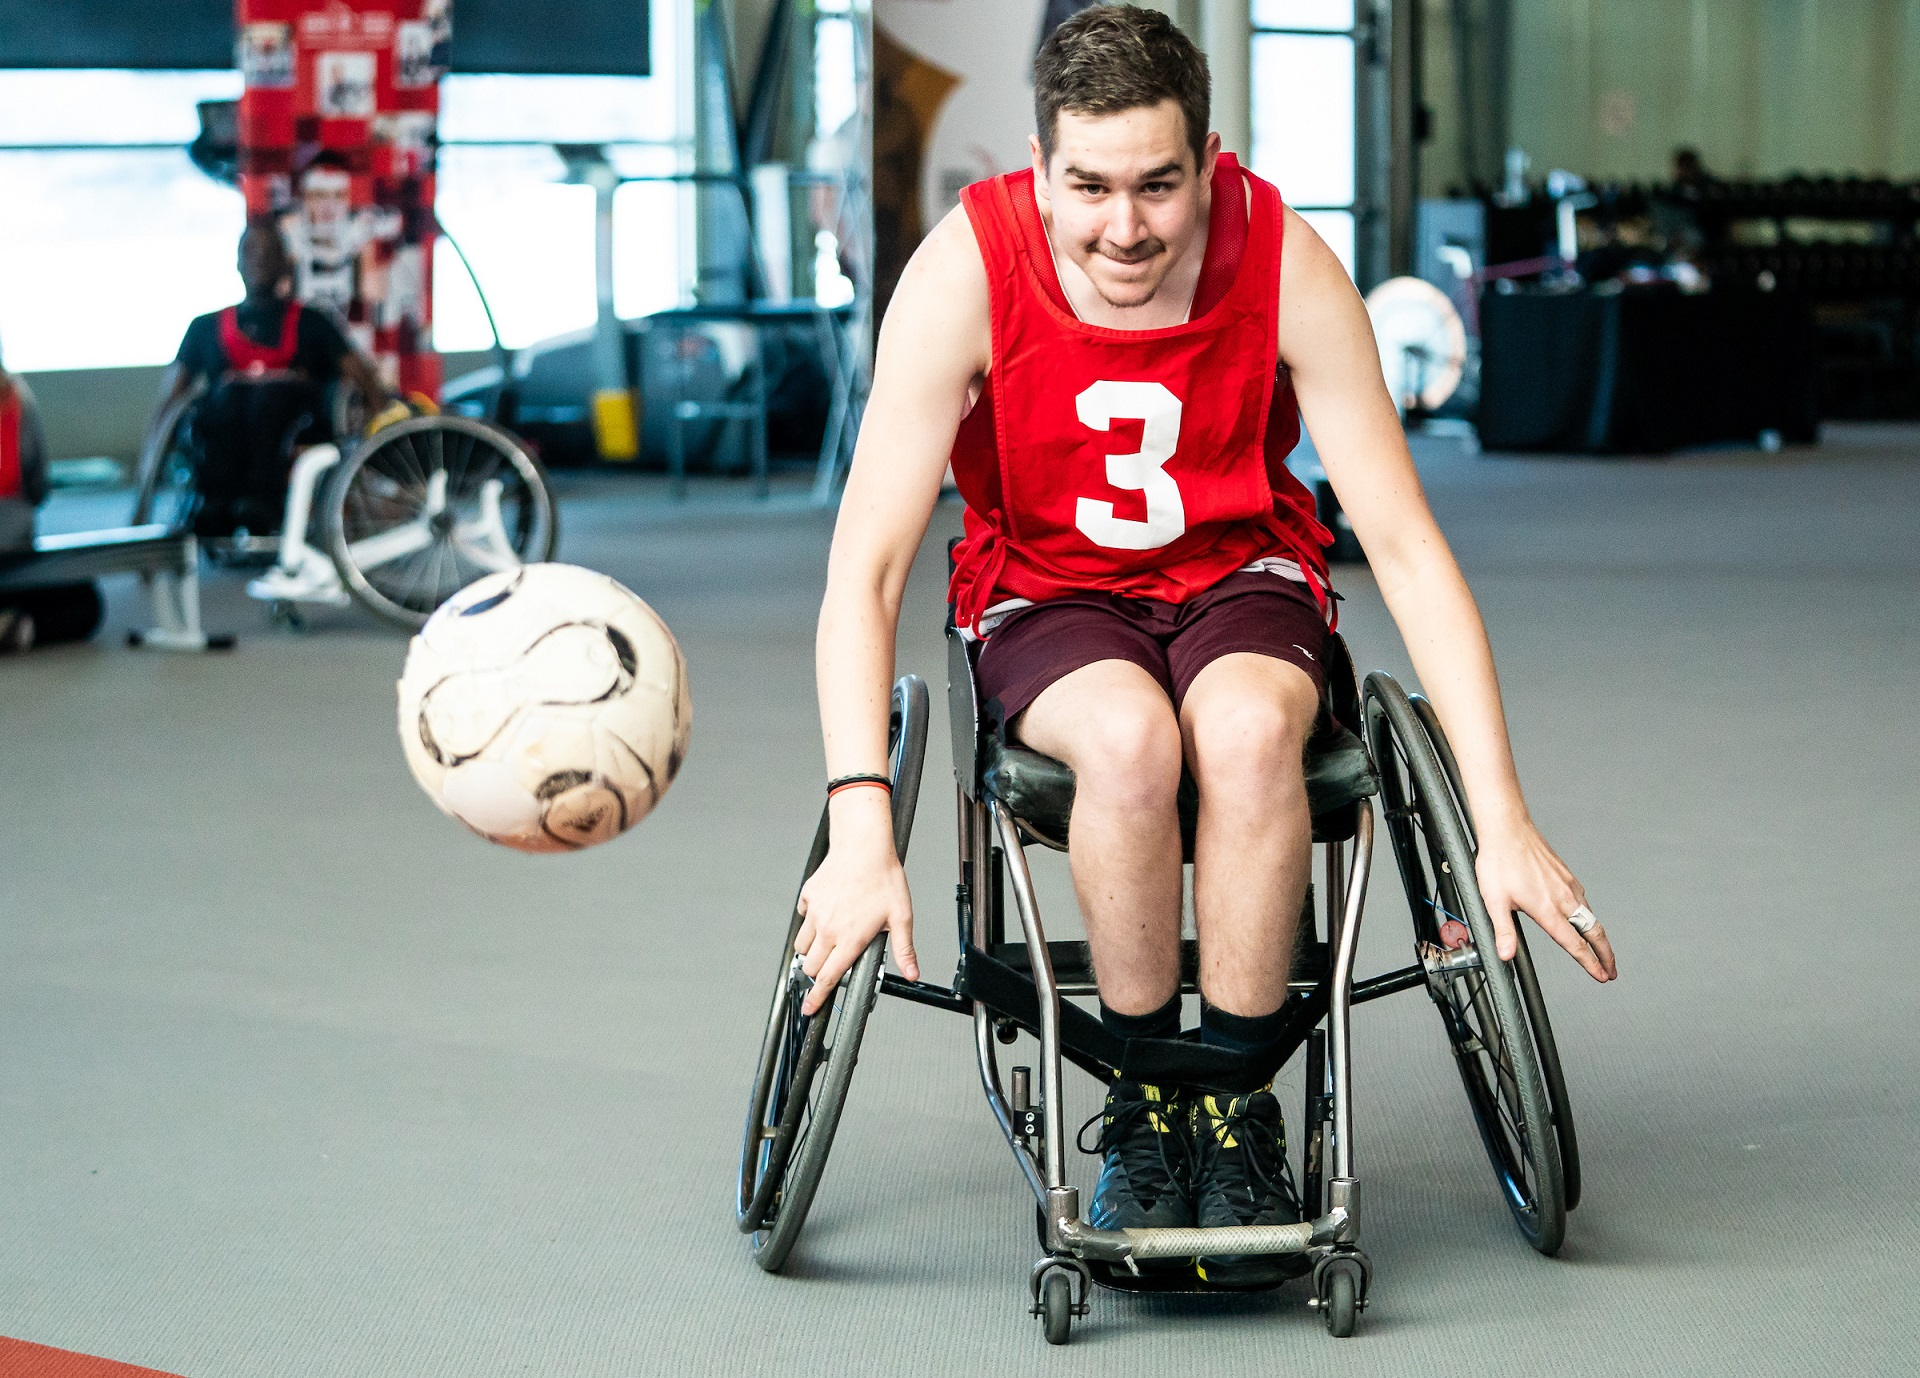 A Paralympian Search participant in a wheelchair races to catch a ball